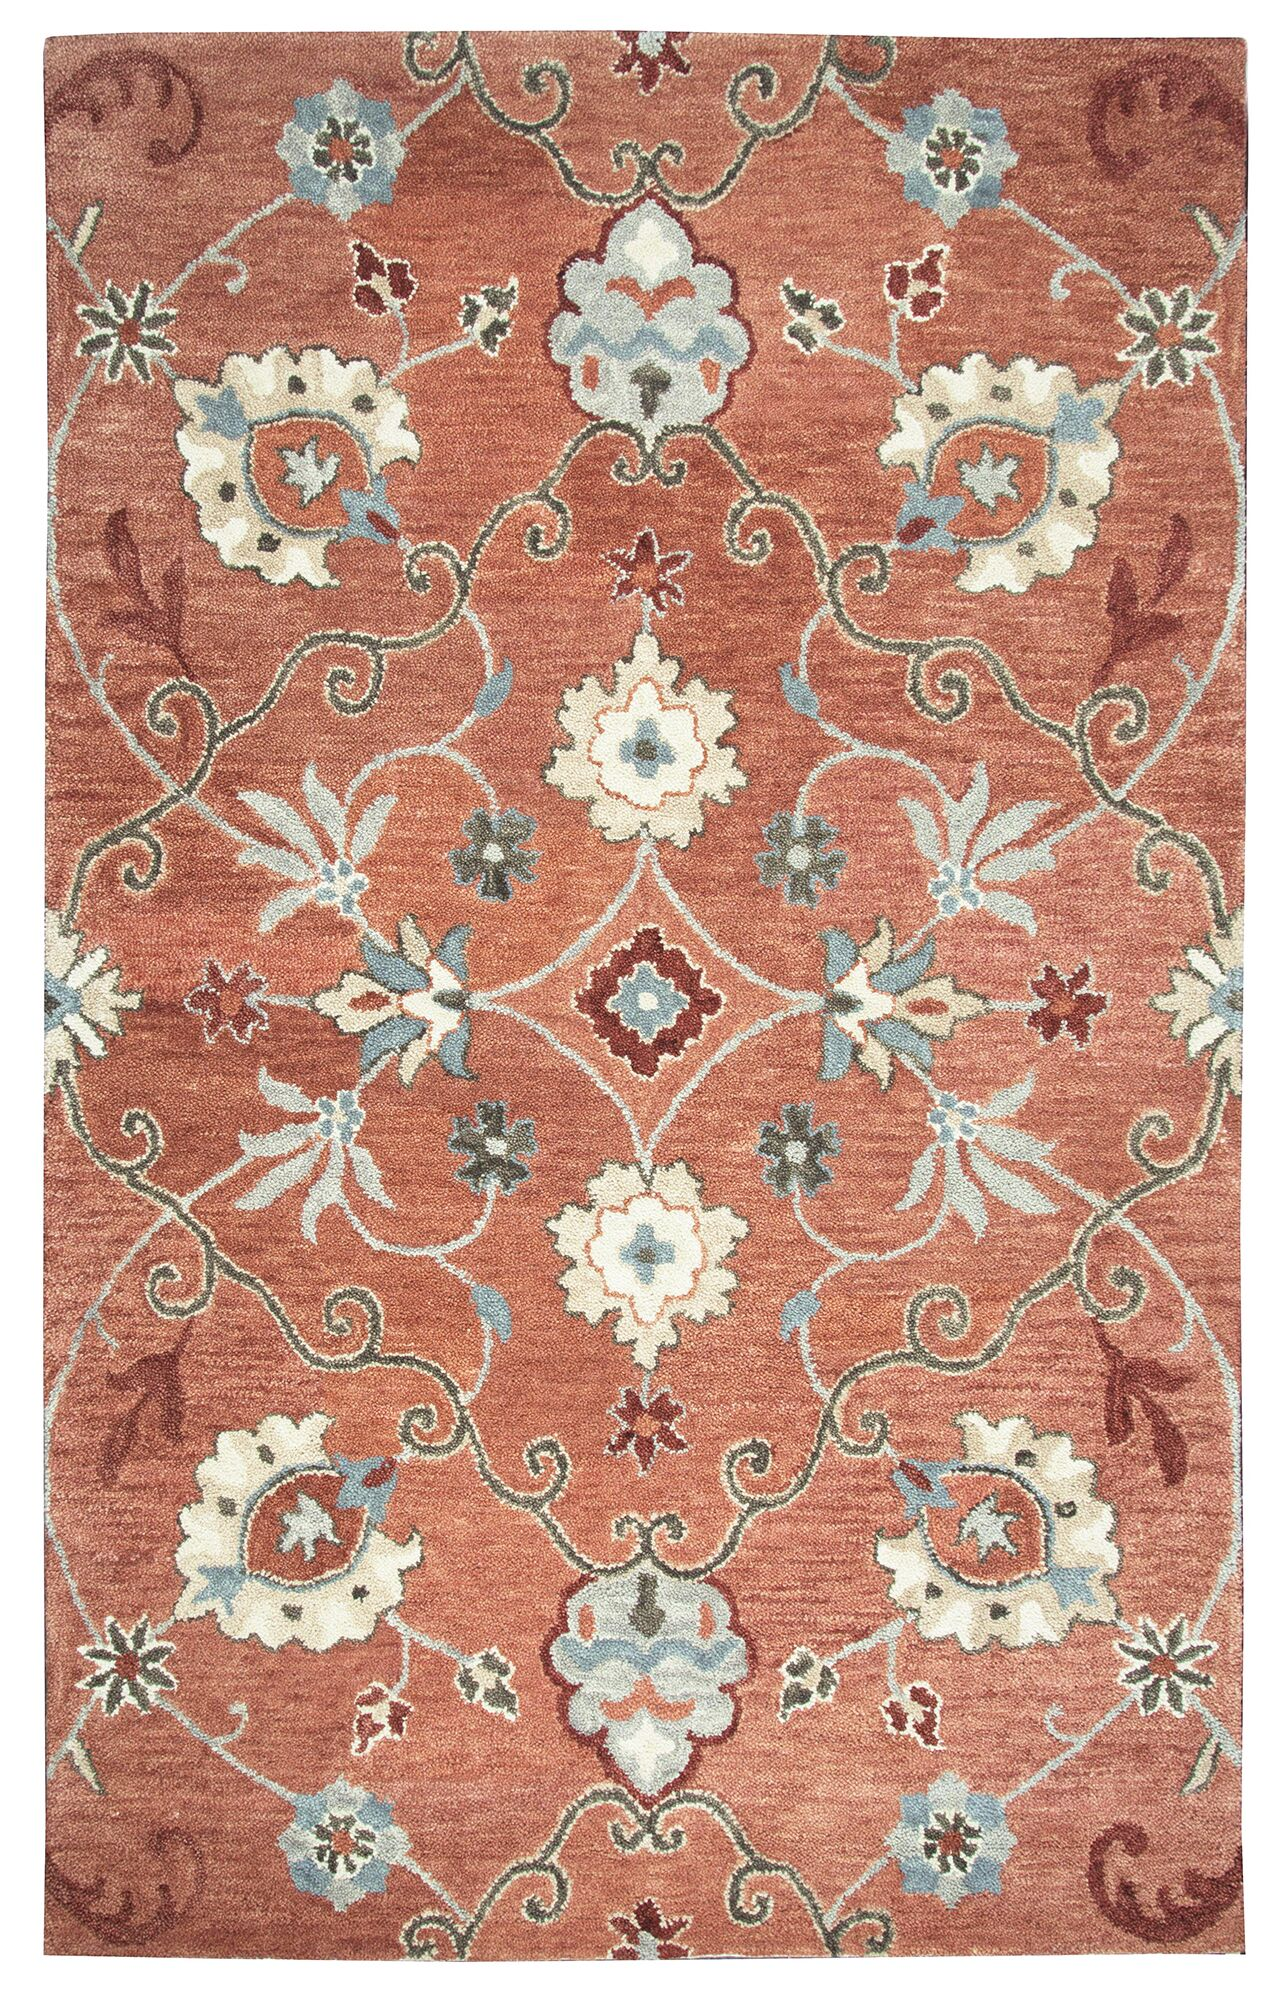 Gellert Hand-Tufted Paprica Area Rug Size: Rectangle 8' x 10'